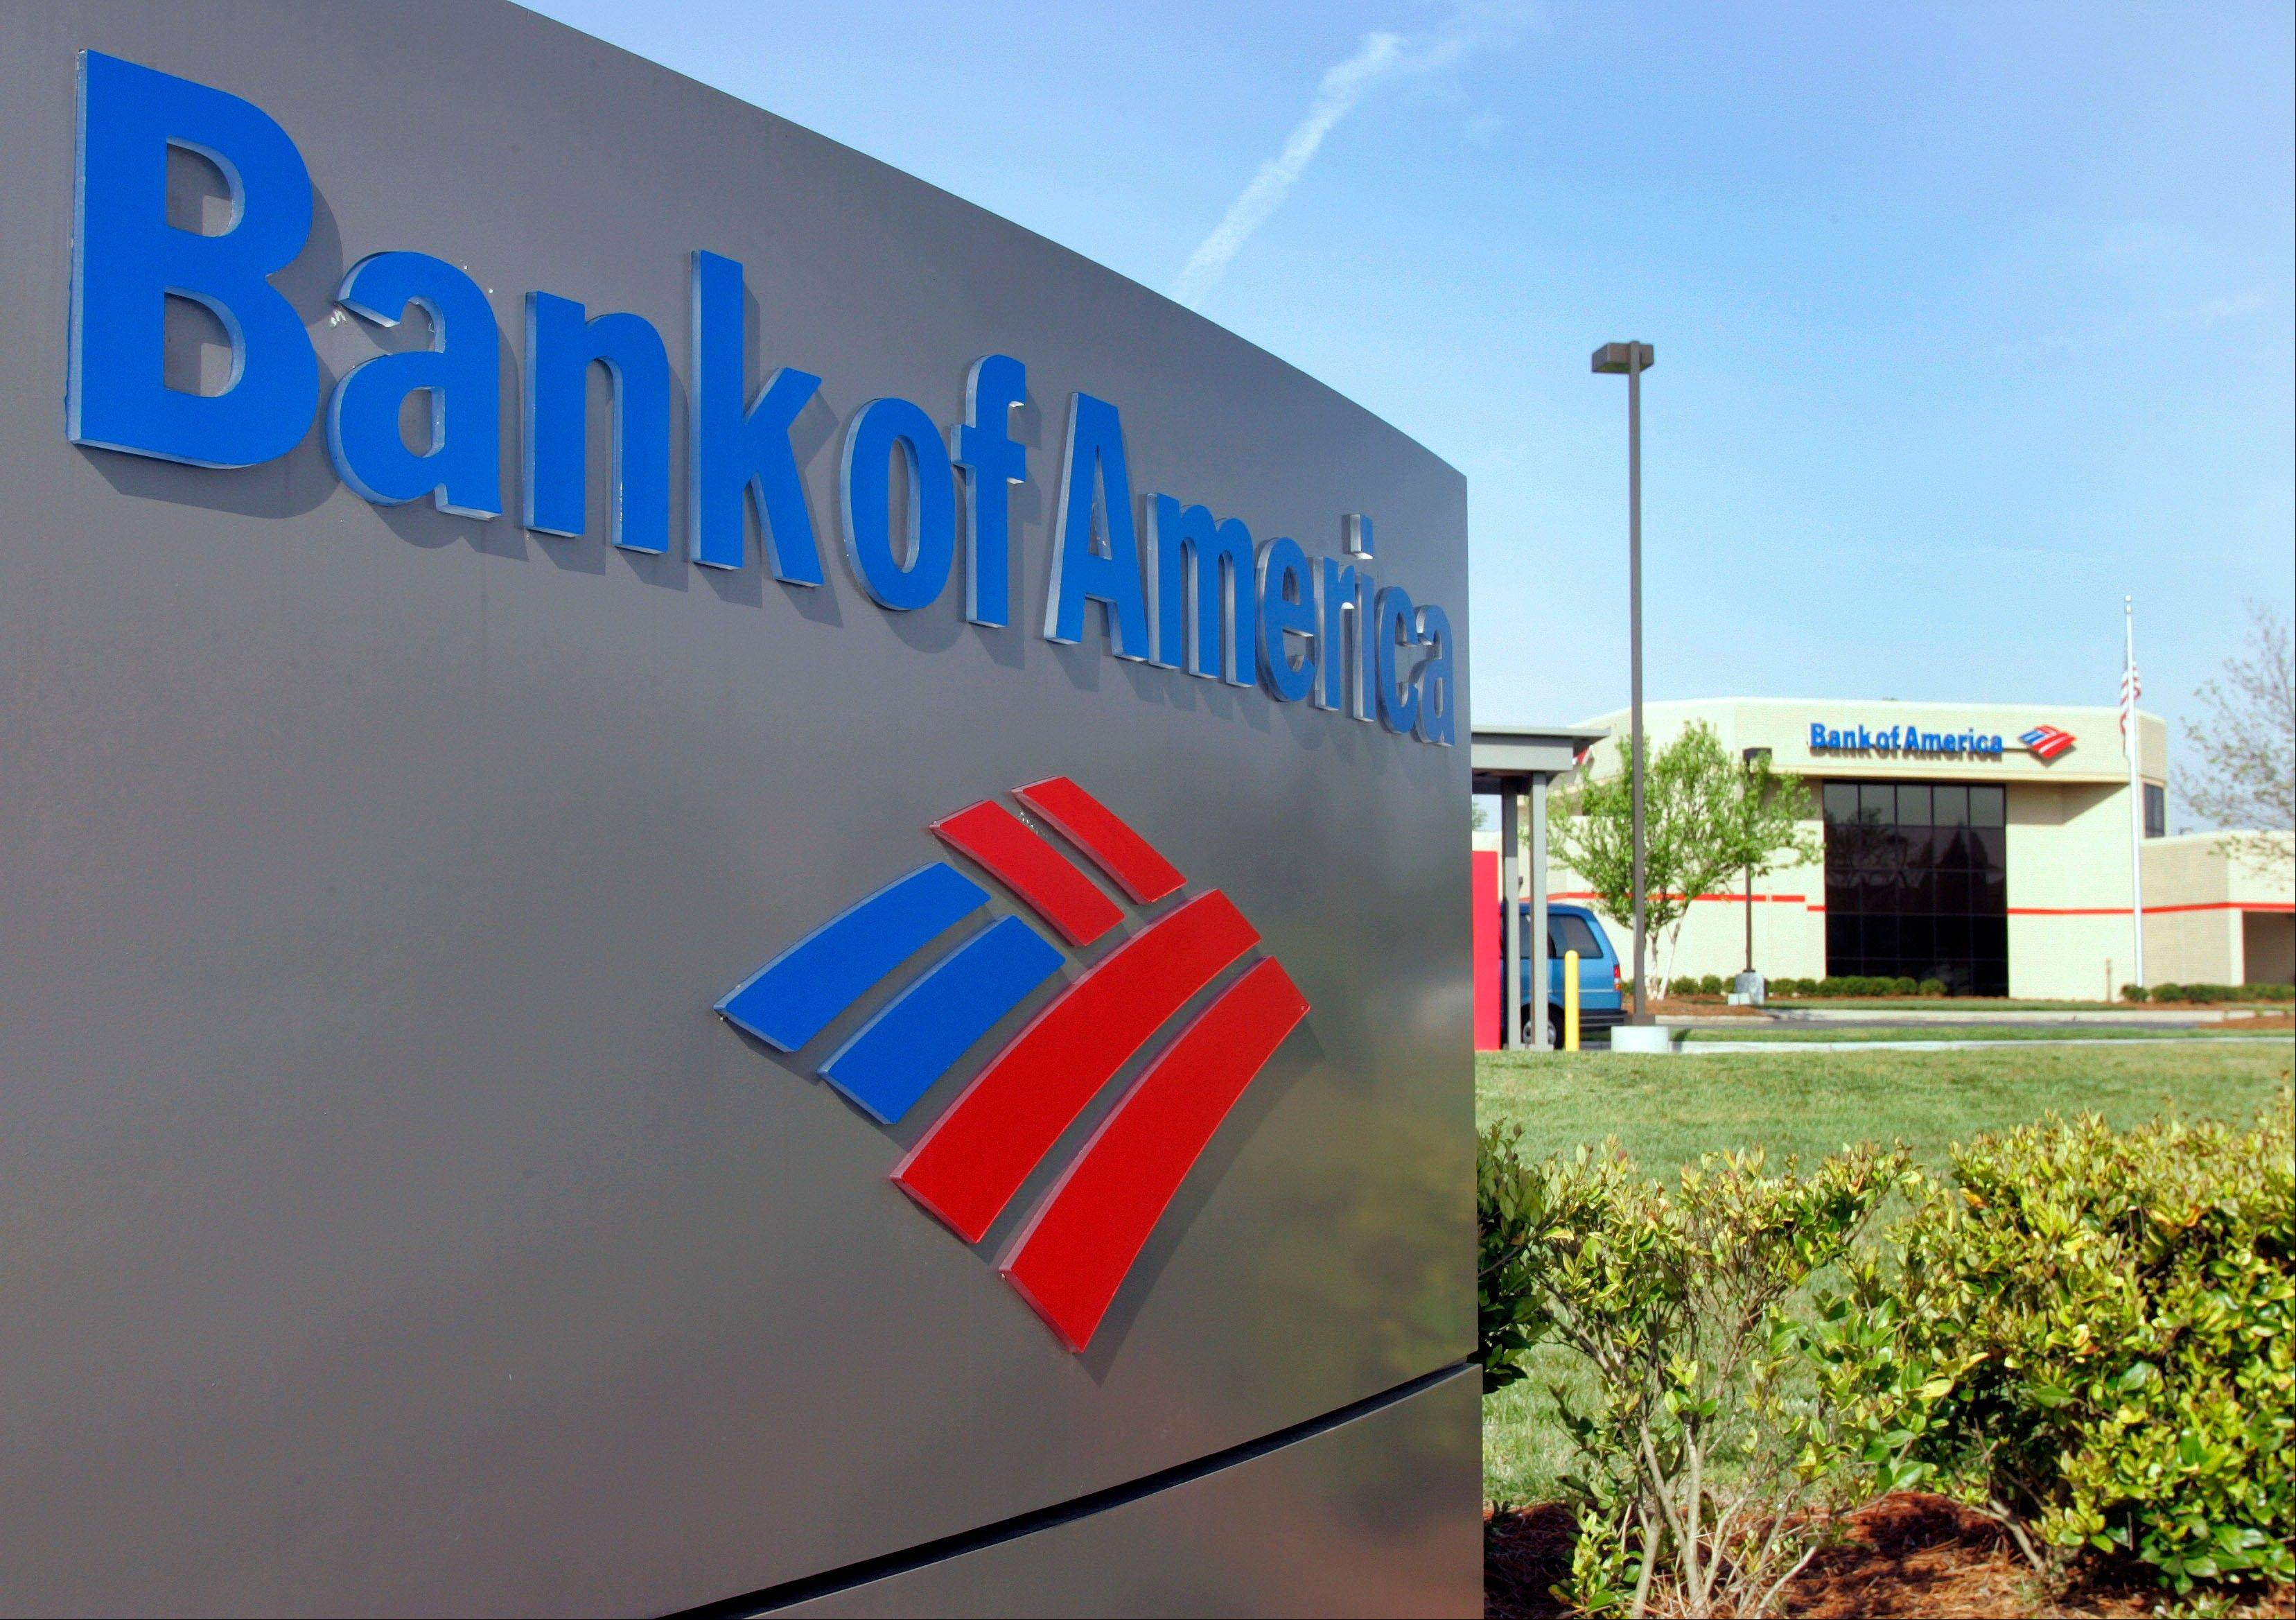 Bank of America says it has begun a pilot program offering some of its mortgage customers who are facing foreclosure a chance to stay in their homes by becoming renters instead of owners.